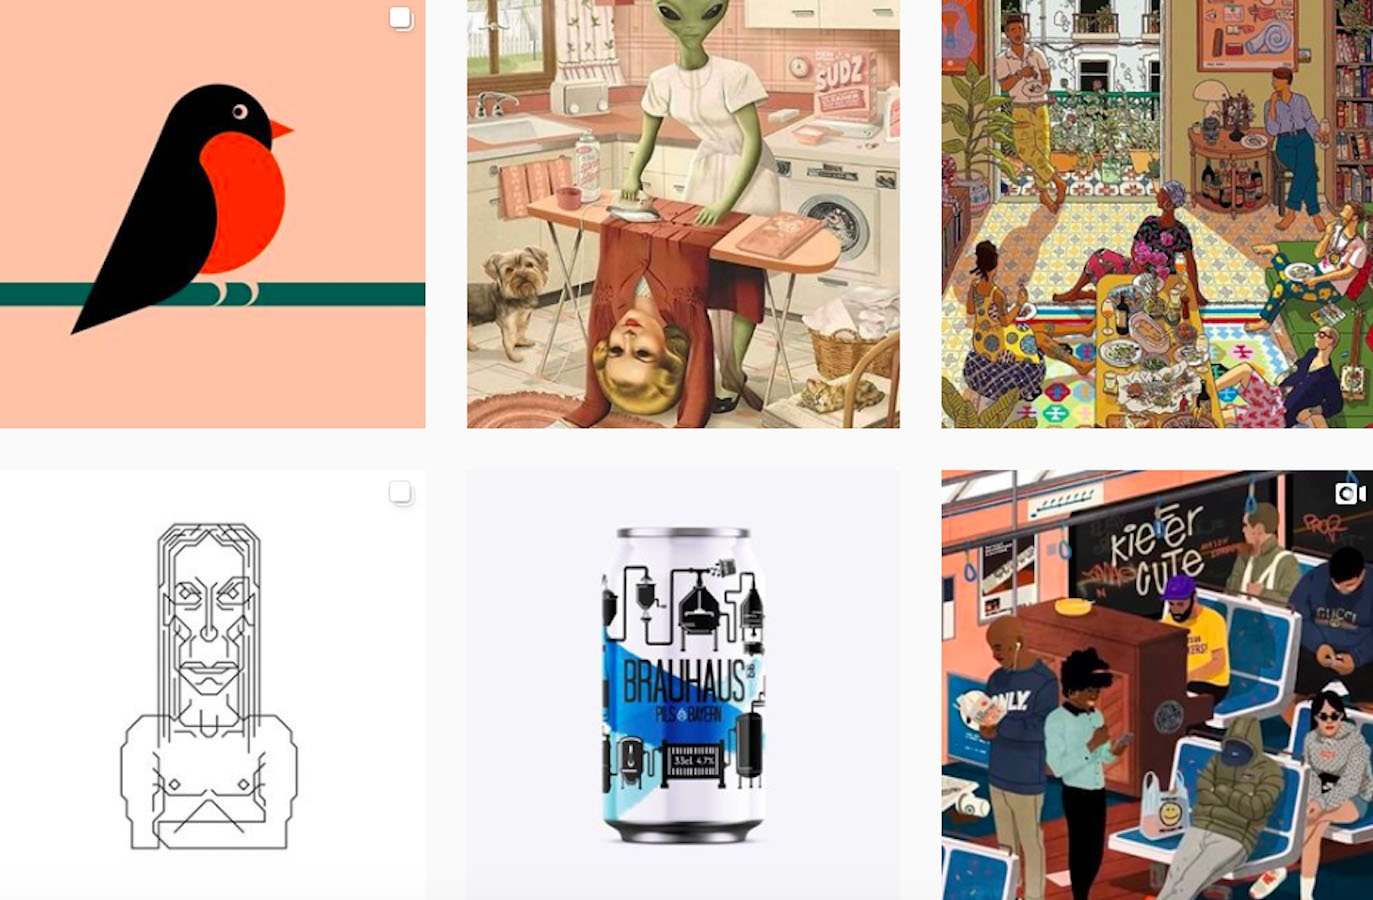 Web Design Inspiration: 110+ Accounts On Instagram and 10+ Best UX & Web Design Books in 2020 - thedesigntip